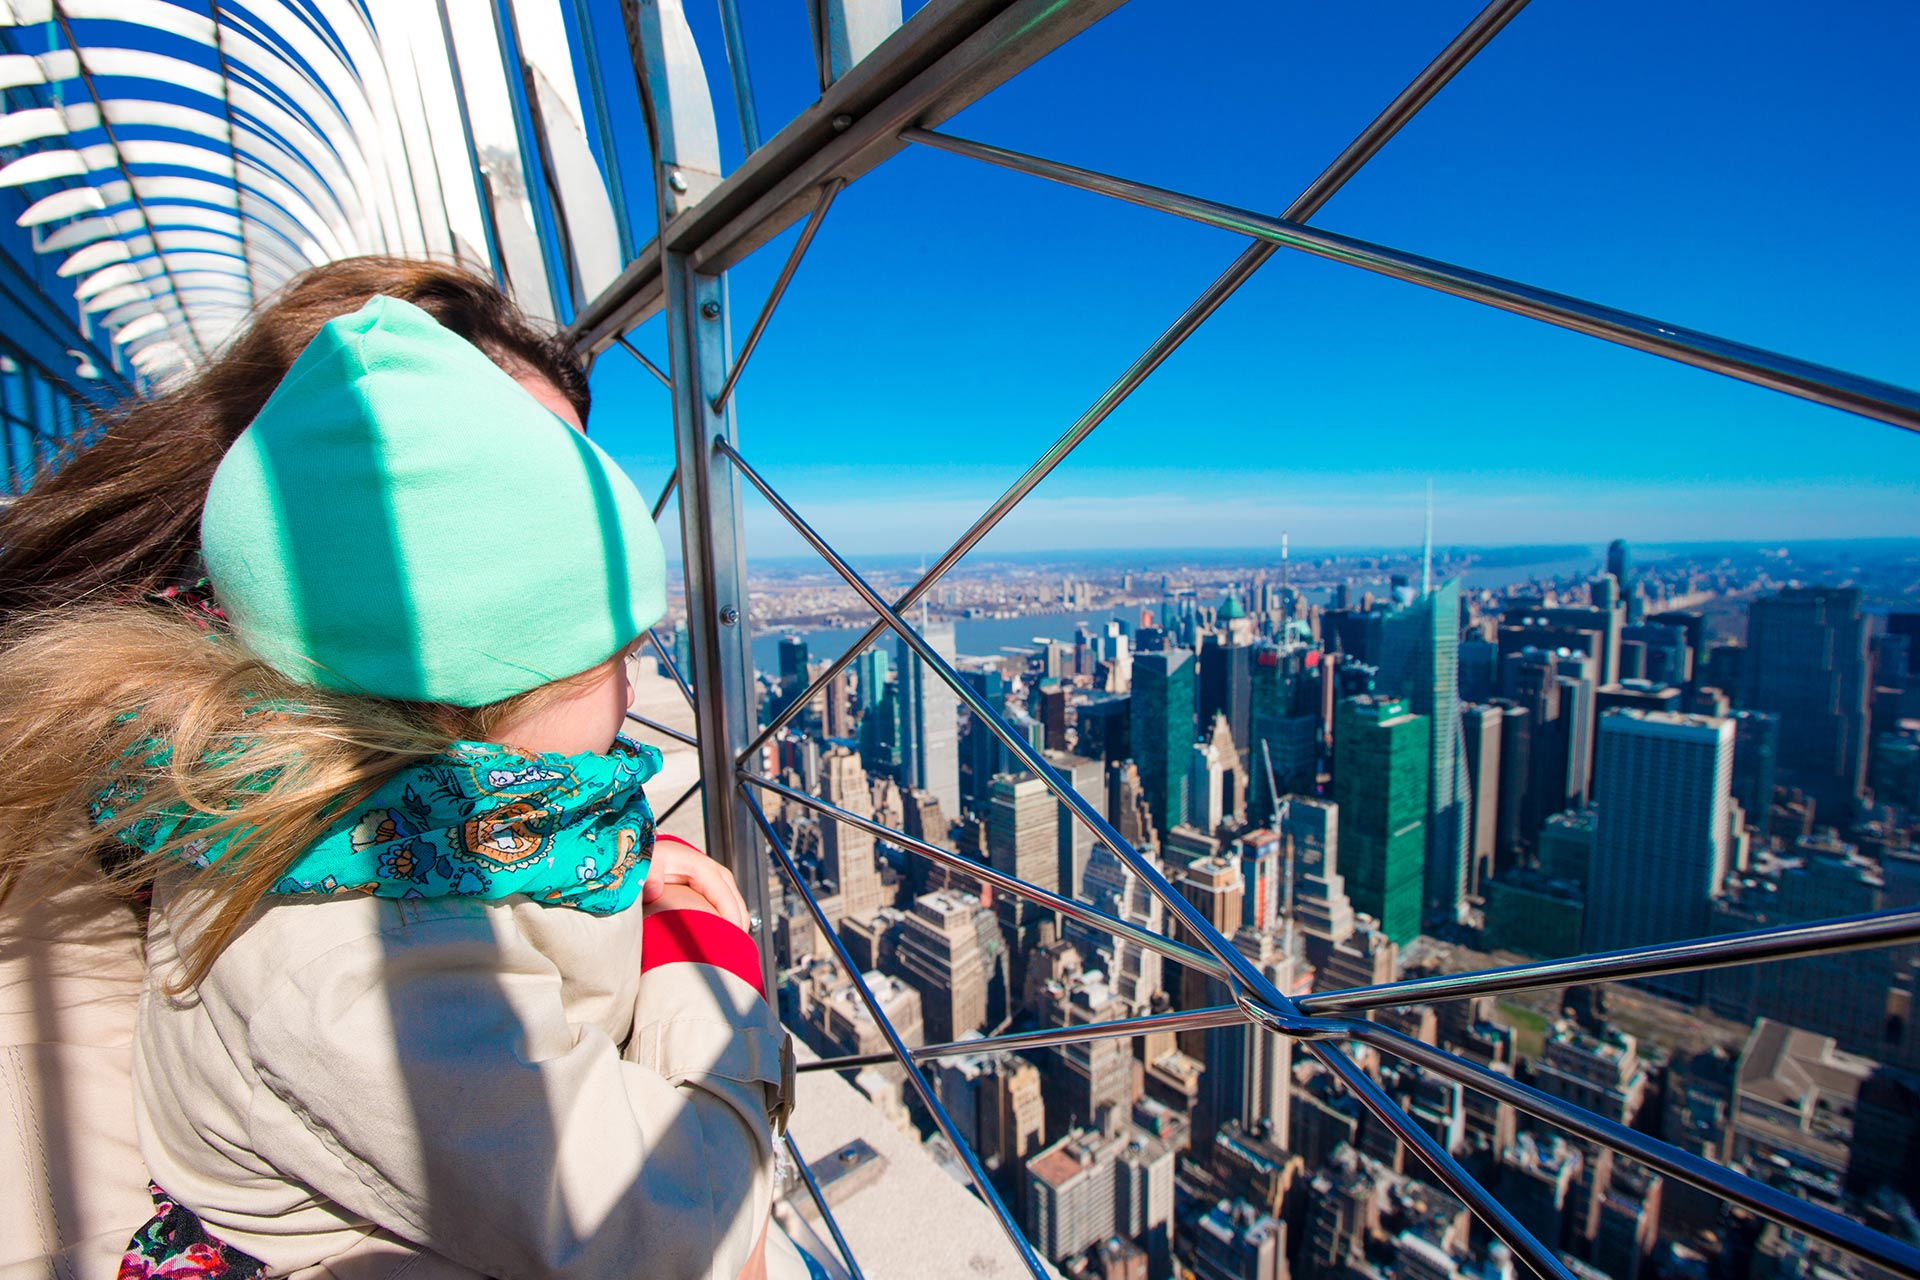 A little girl checking out the view of New York City from the Empire State Building.